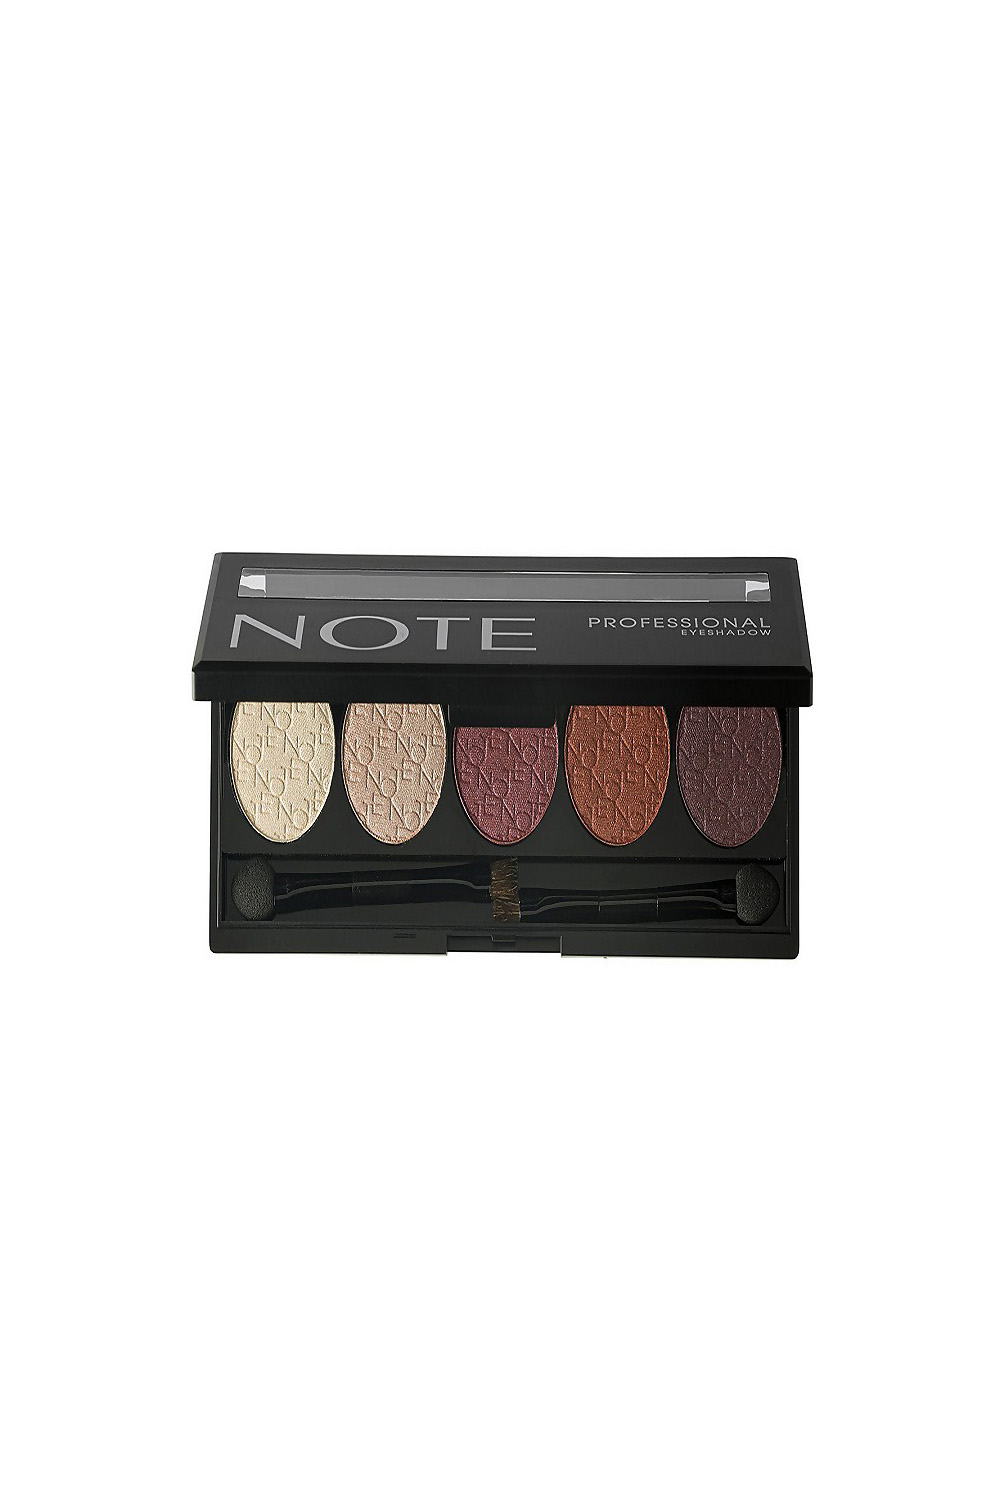 NOTE | NOTE PROFESSIONAL EYESHADOW 107